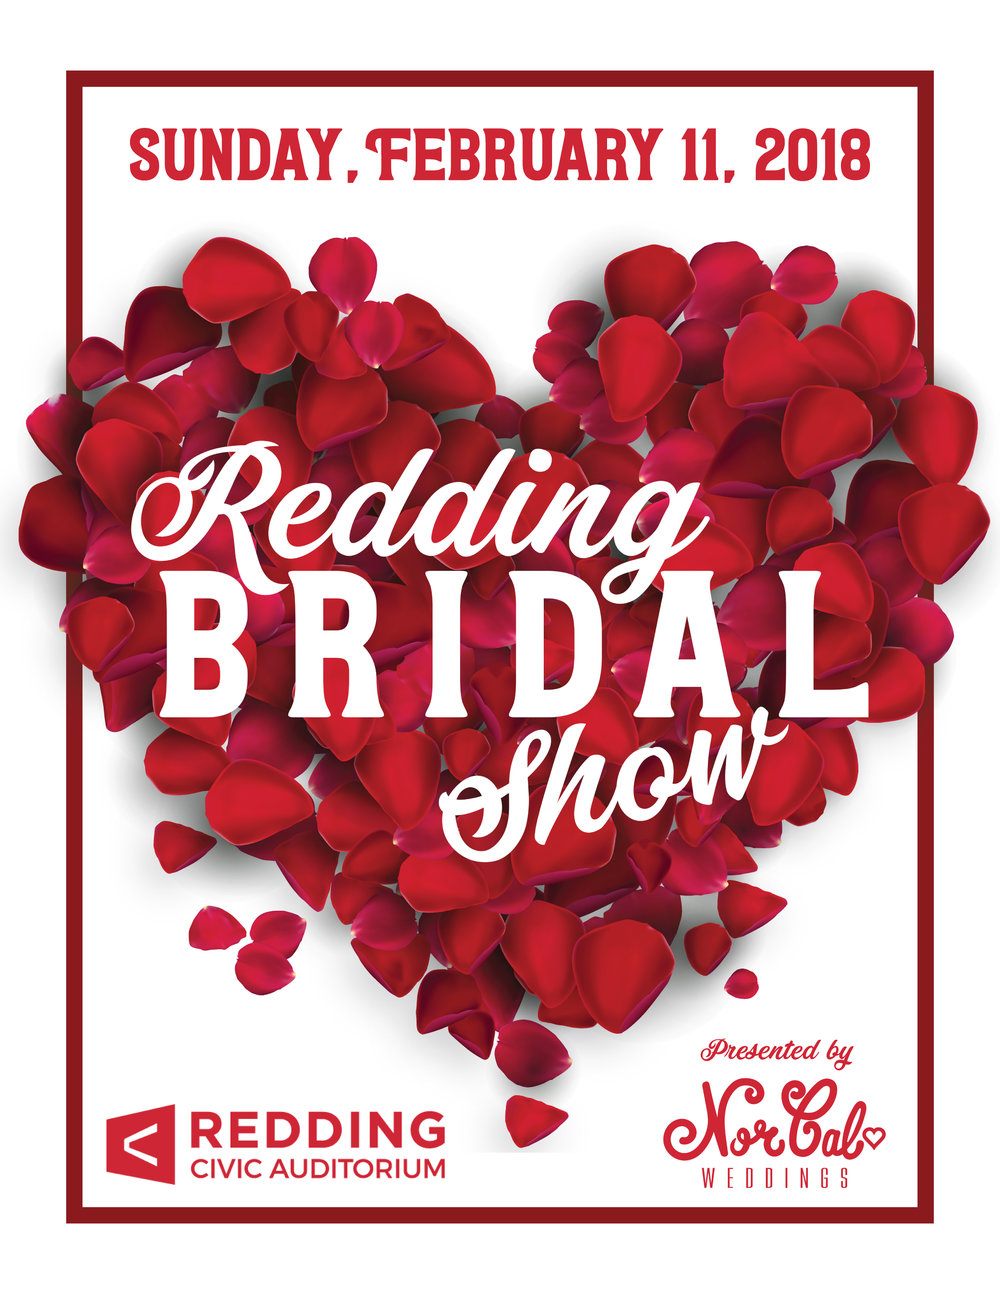 Redding Bridal Show.jpg